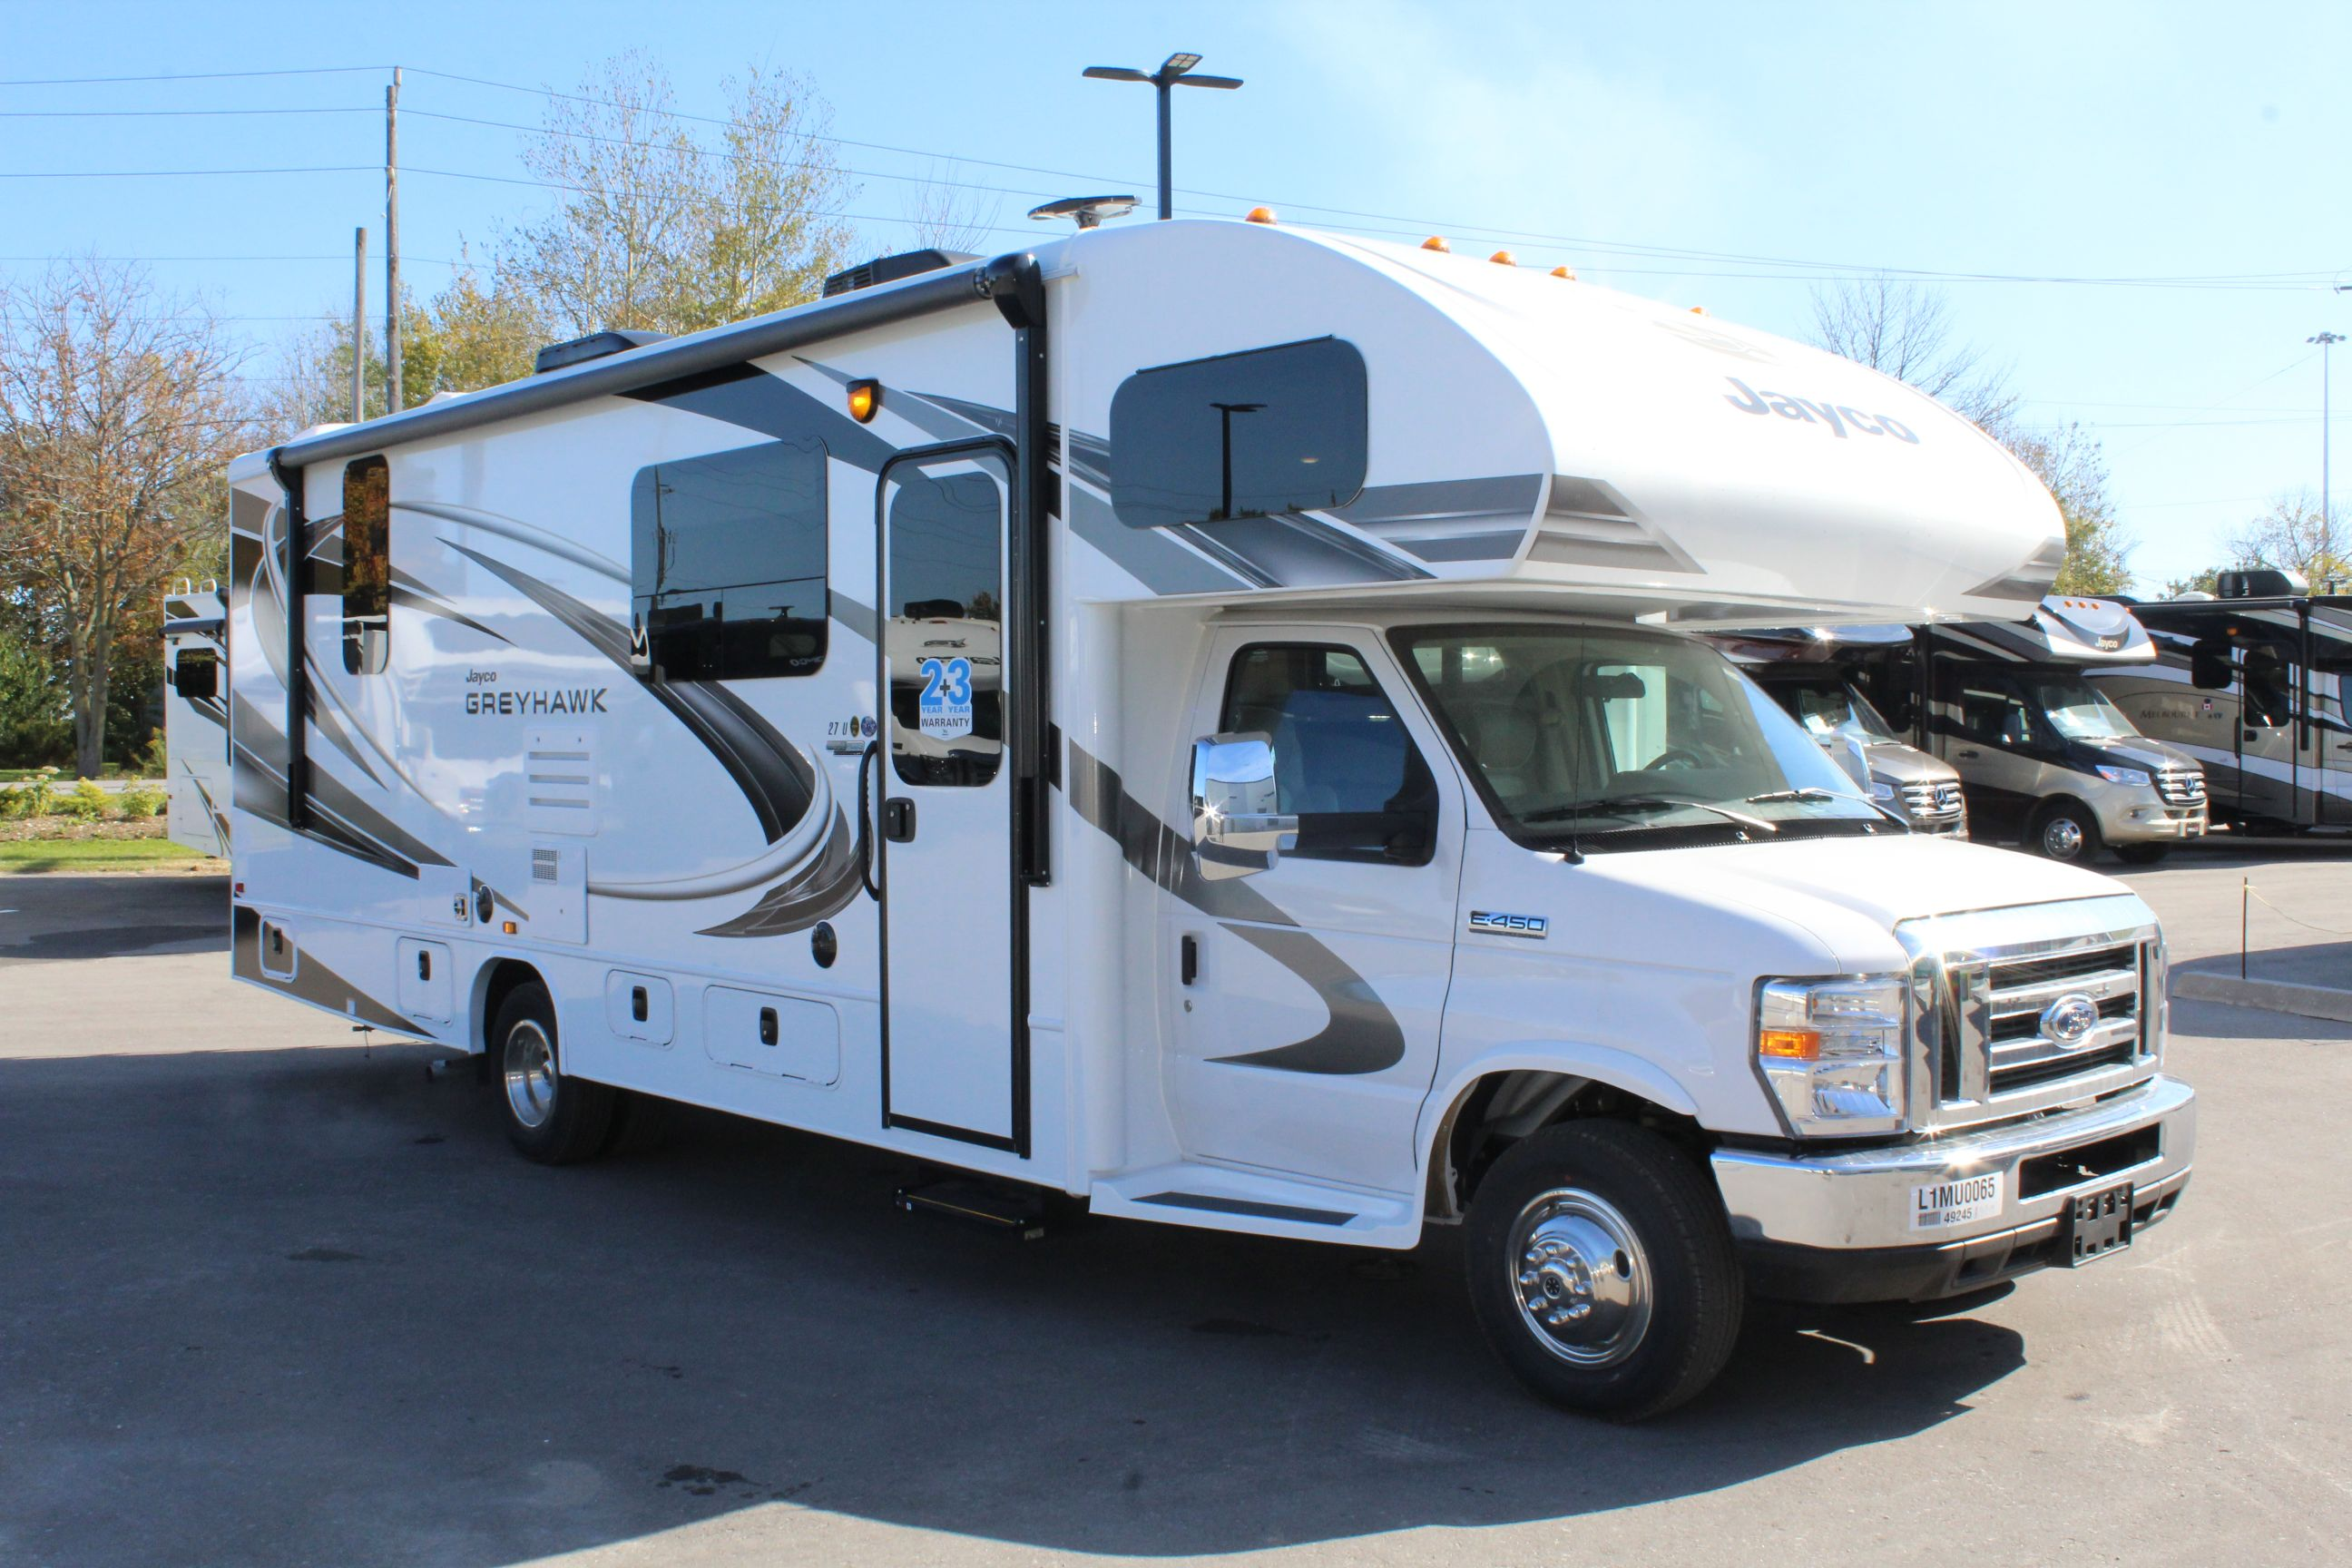 Front and Right sides of the Jayco Greyhawk 27U, with its 12V electric awning with LED lights, Remote-control, heated side-view mirrors, and Backup and side-view cameras/monitor.